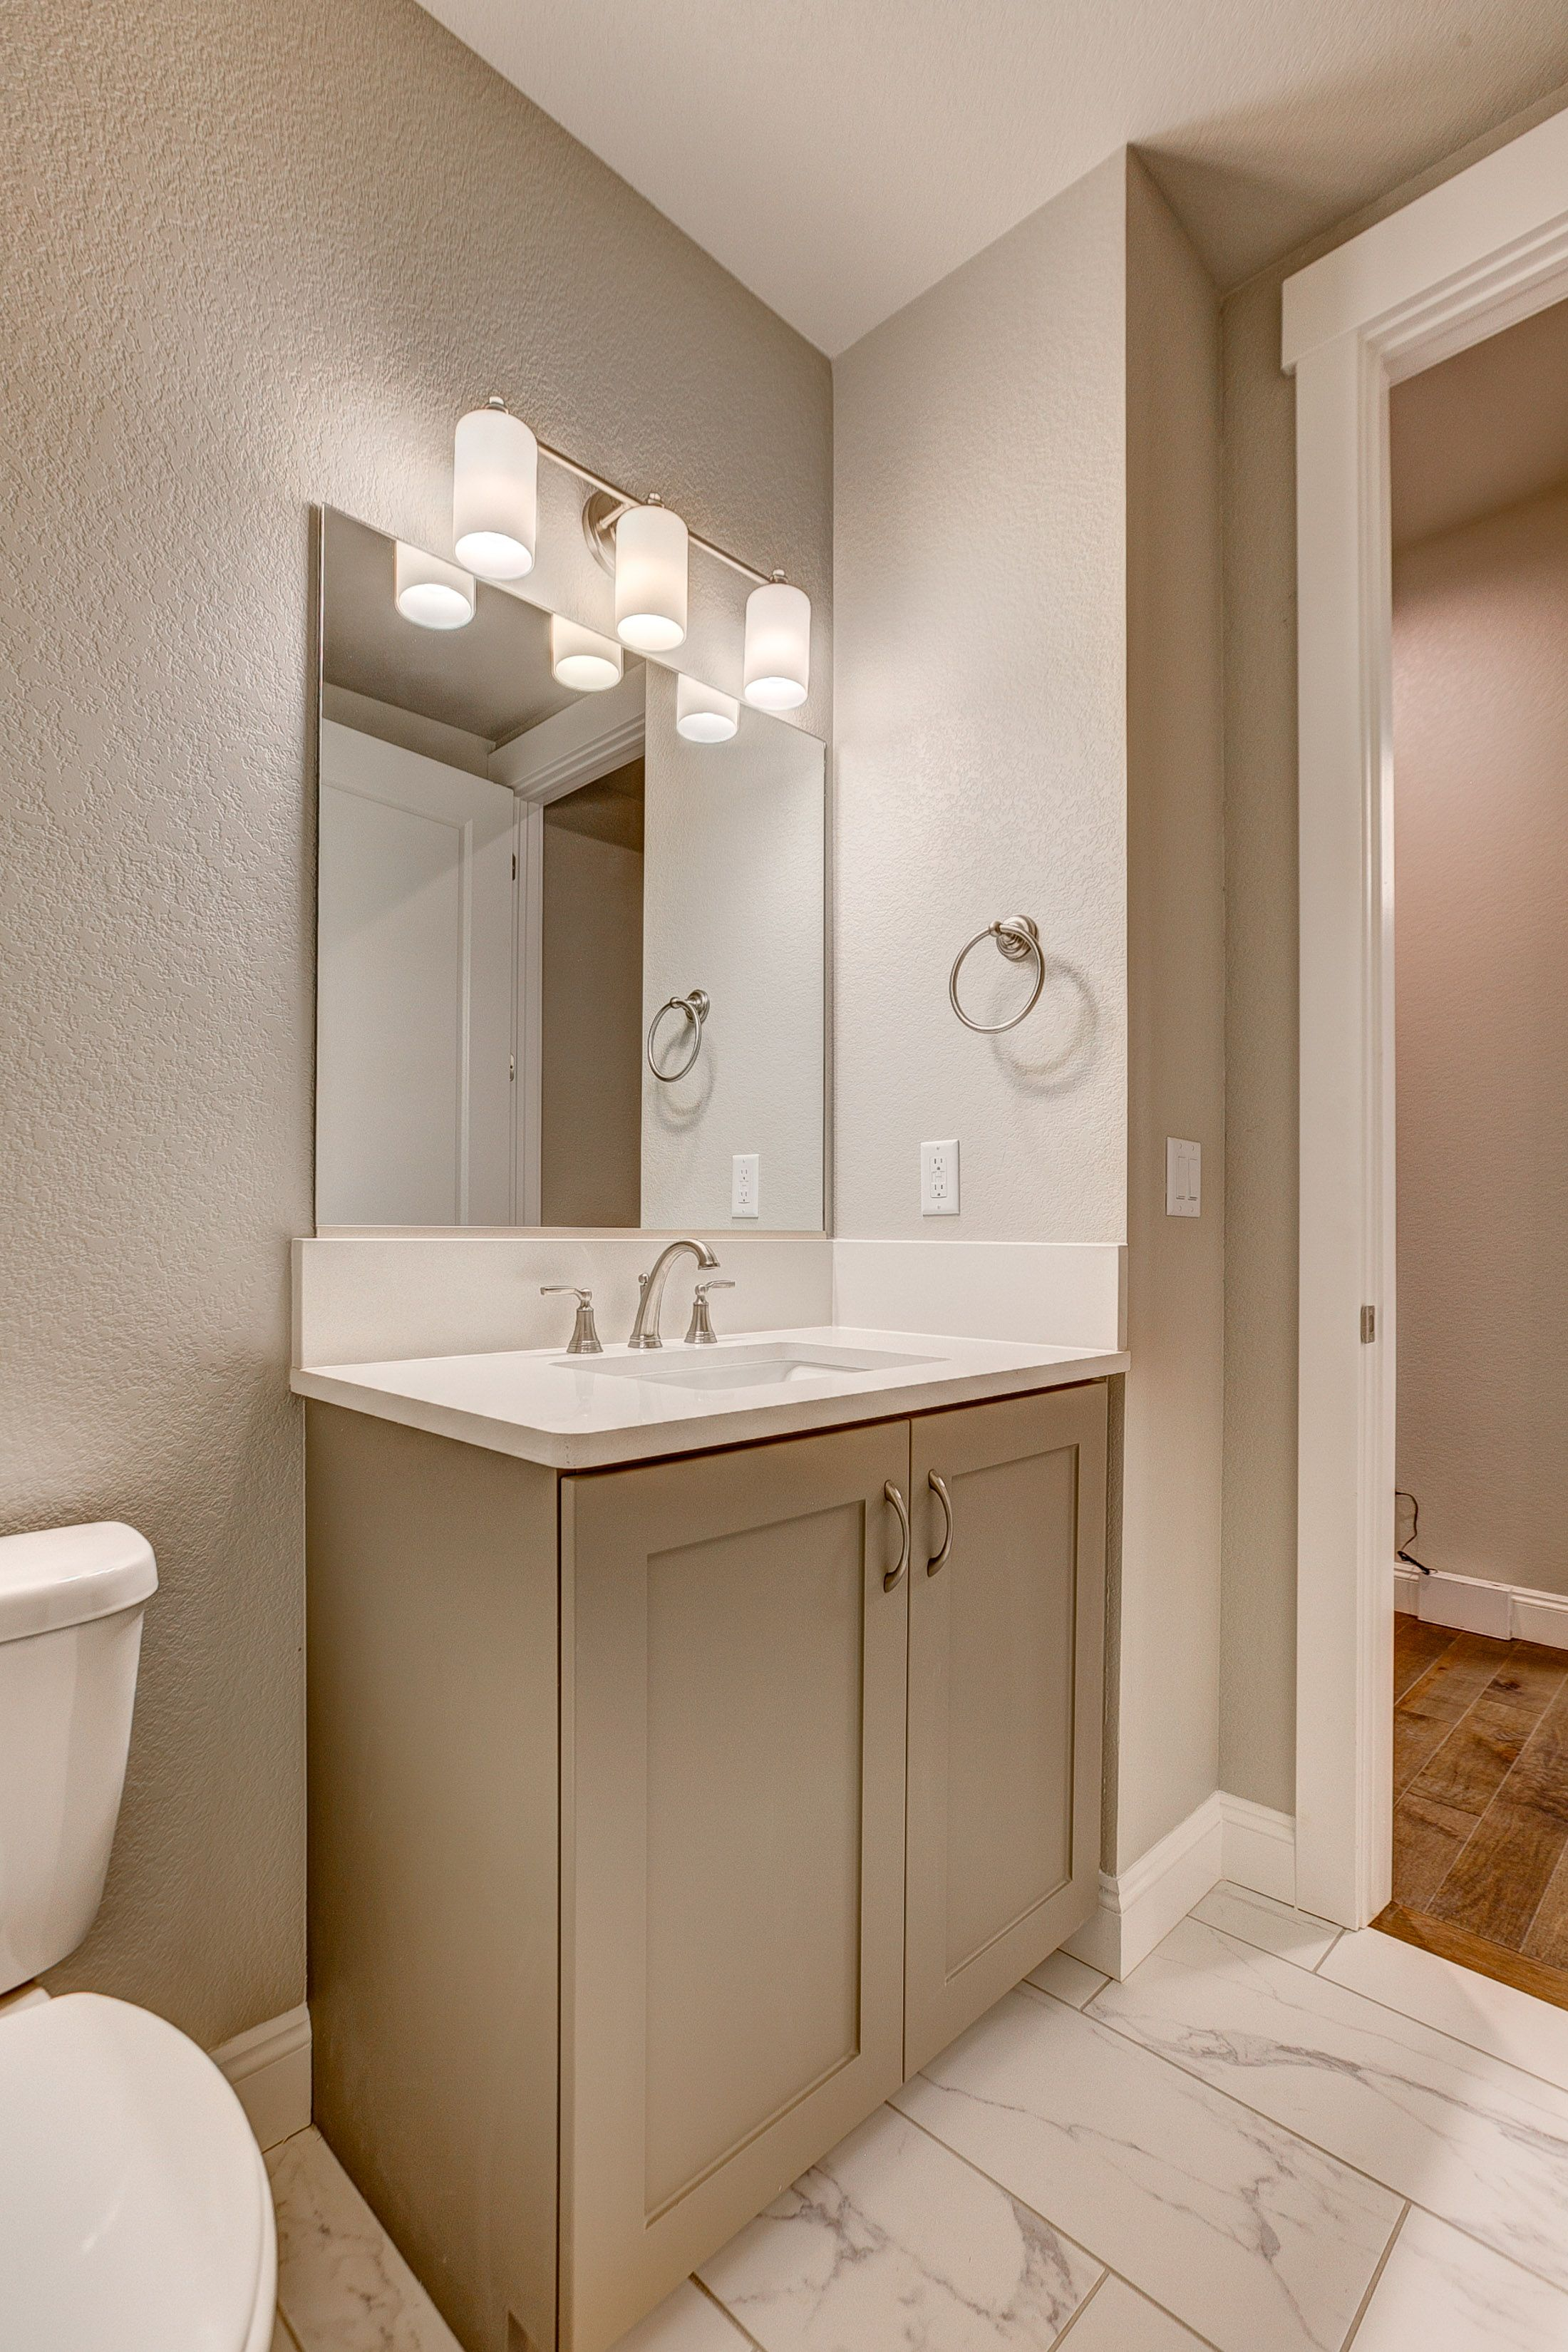 Bathroom featured in the Victoria By Landmark Homes  in Fort Collins-Loveland, CO